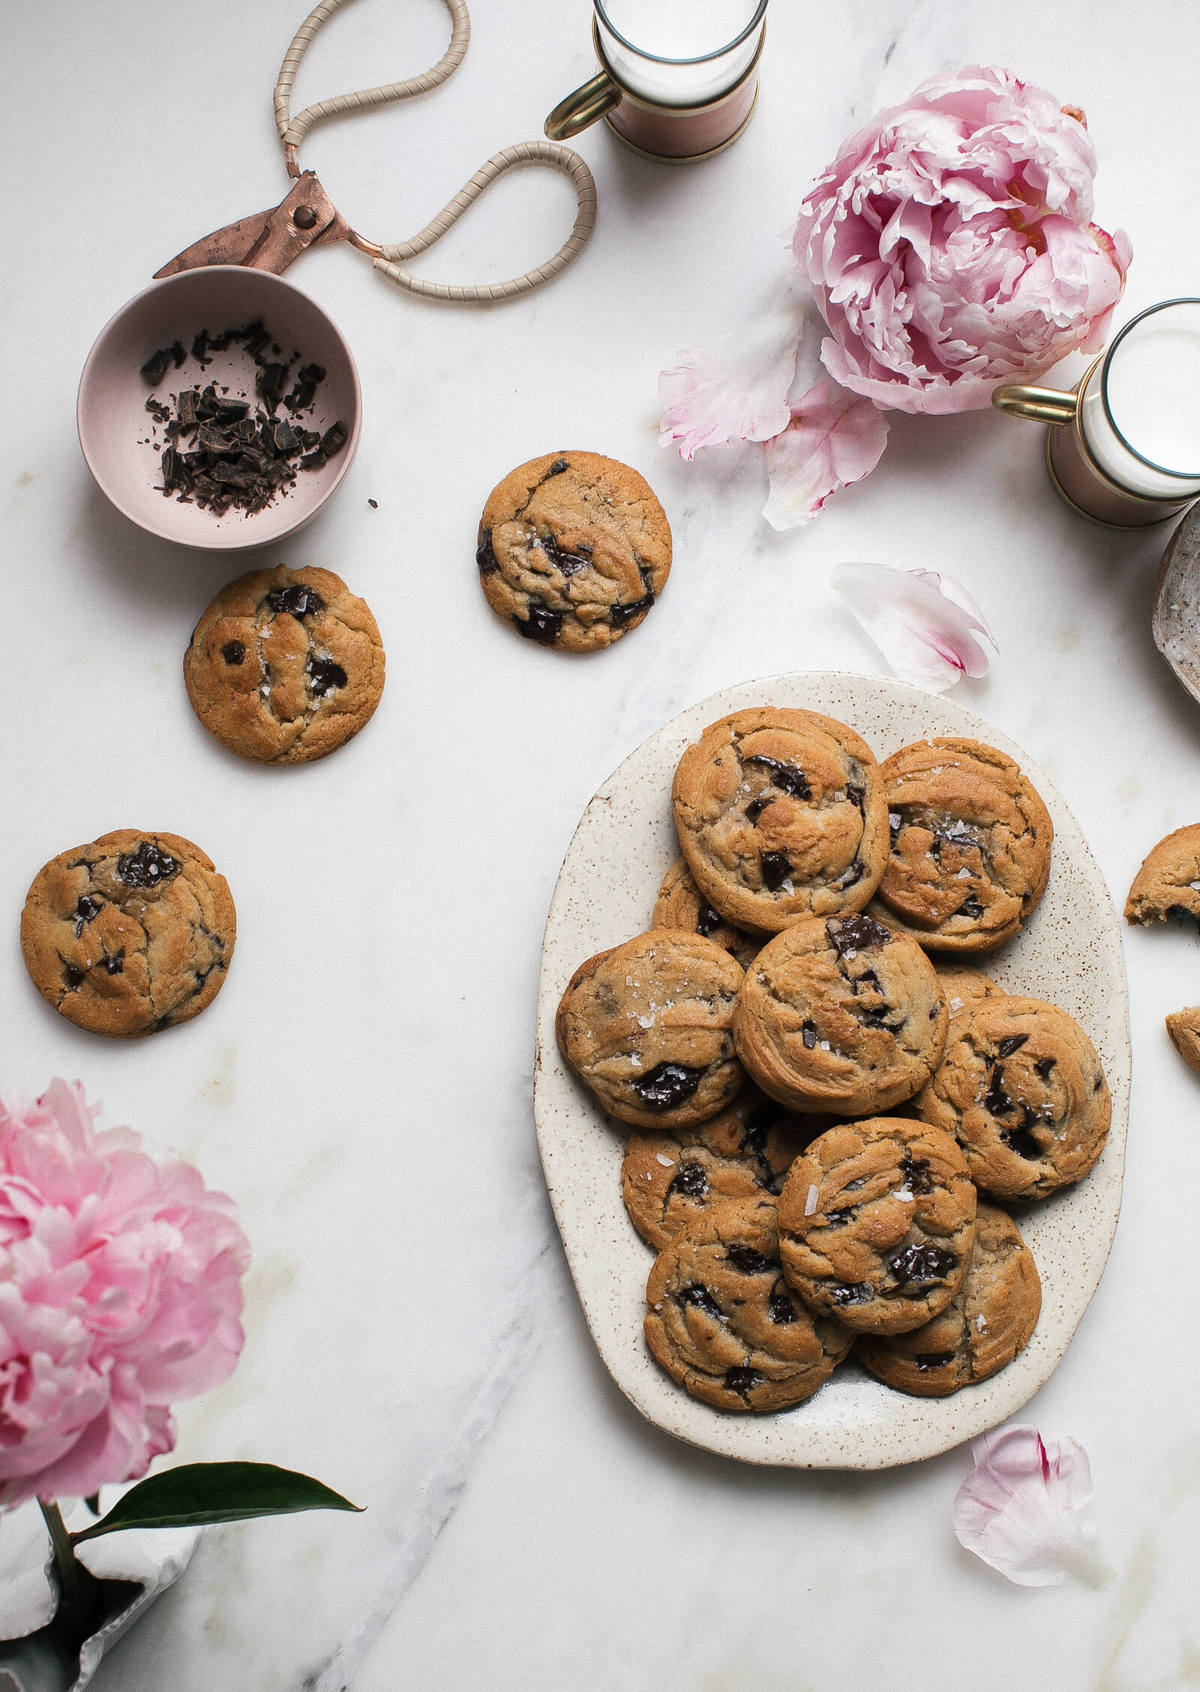 My Favorite Cozy Chocolate Chip Cookies – A Cozy Kitchen